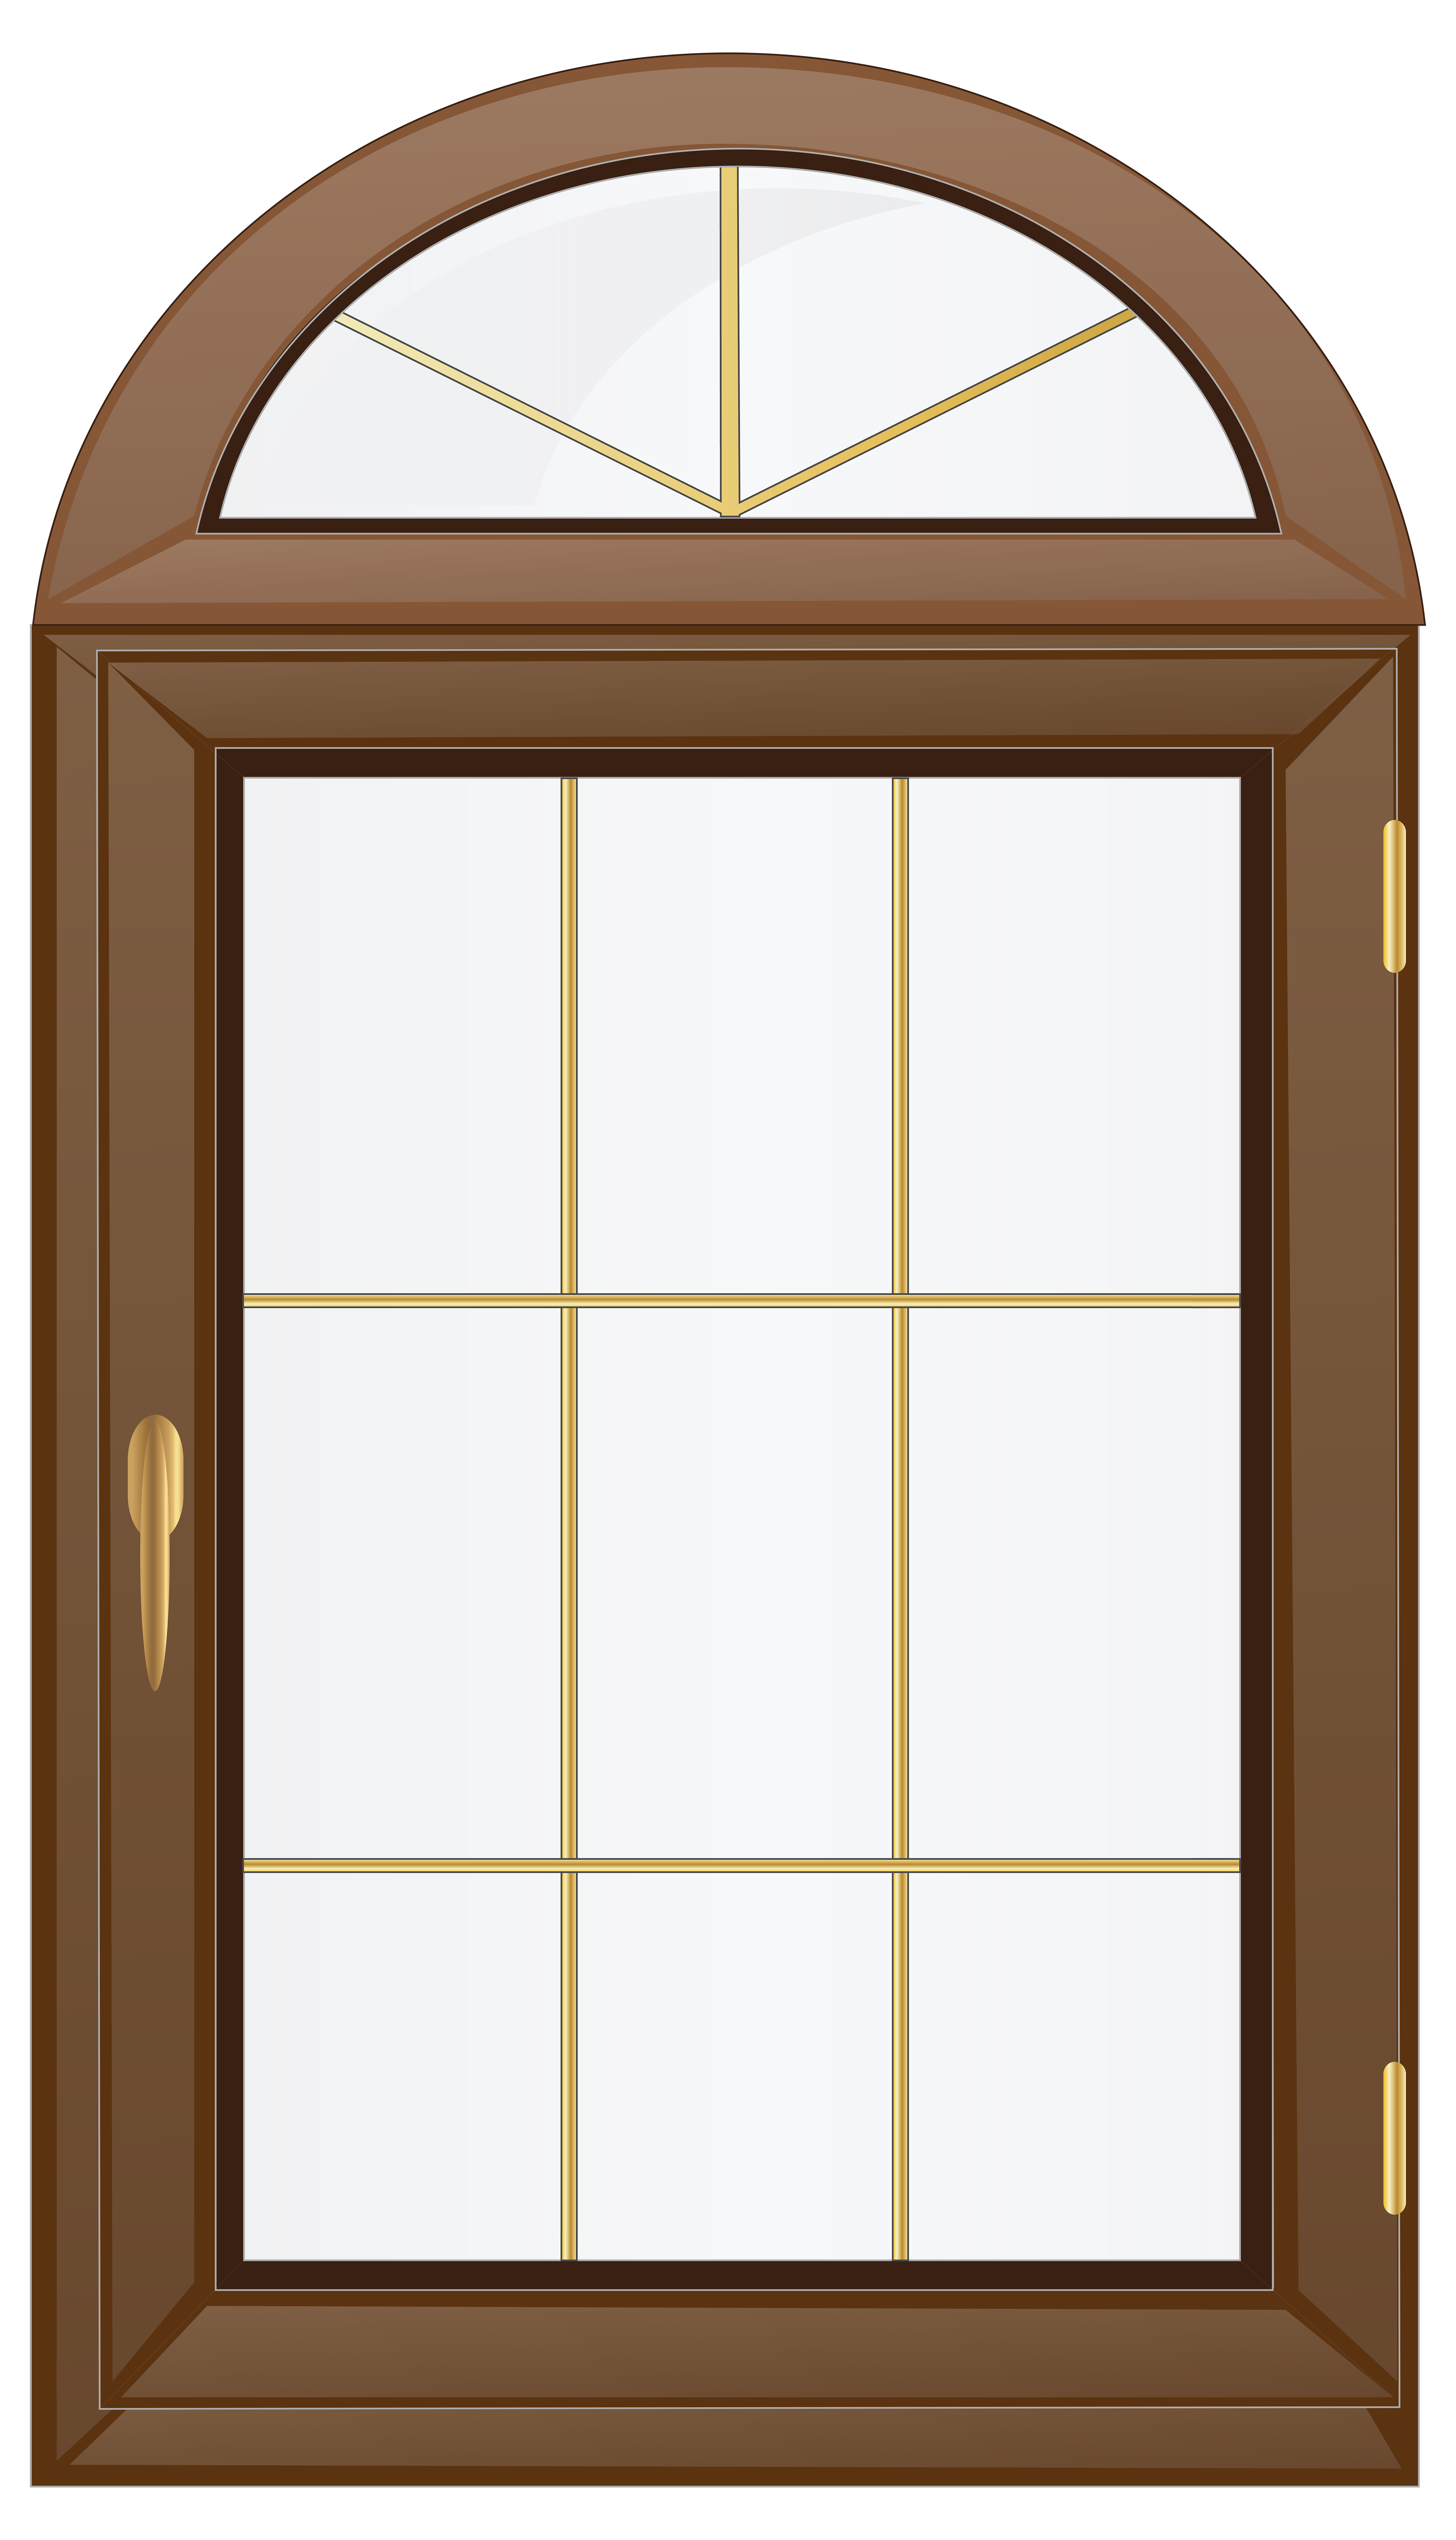 window clipart transparent pencil and color window #15272